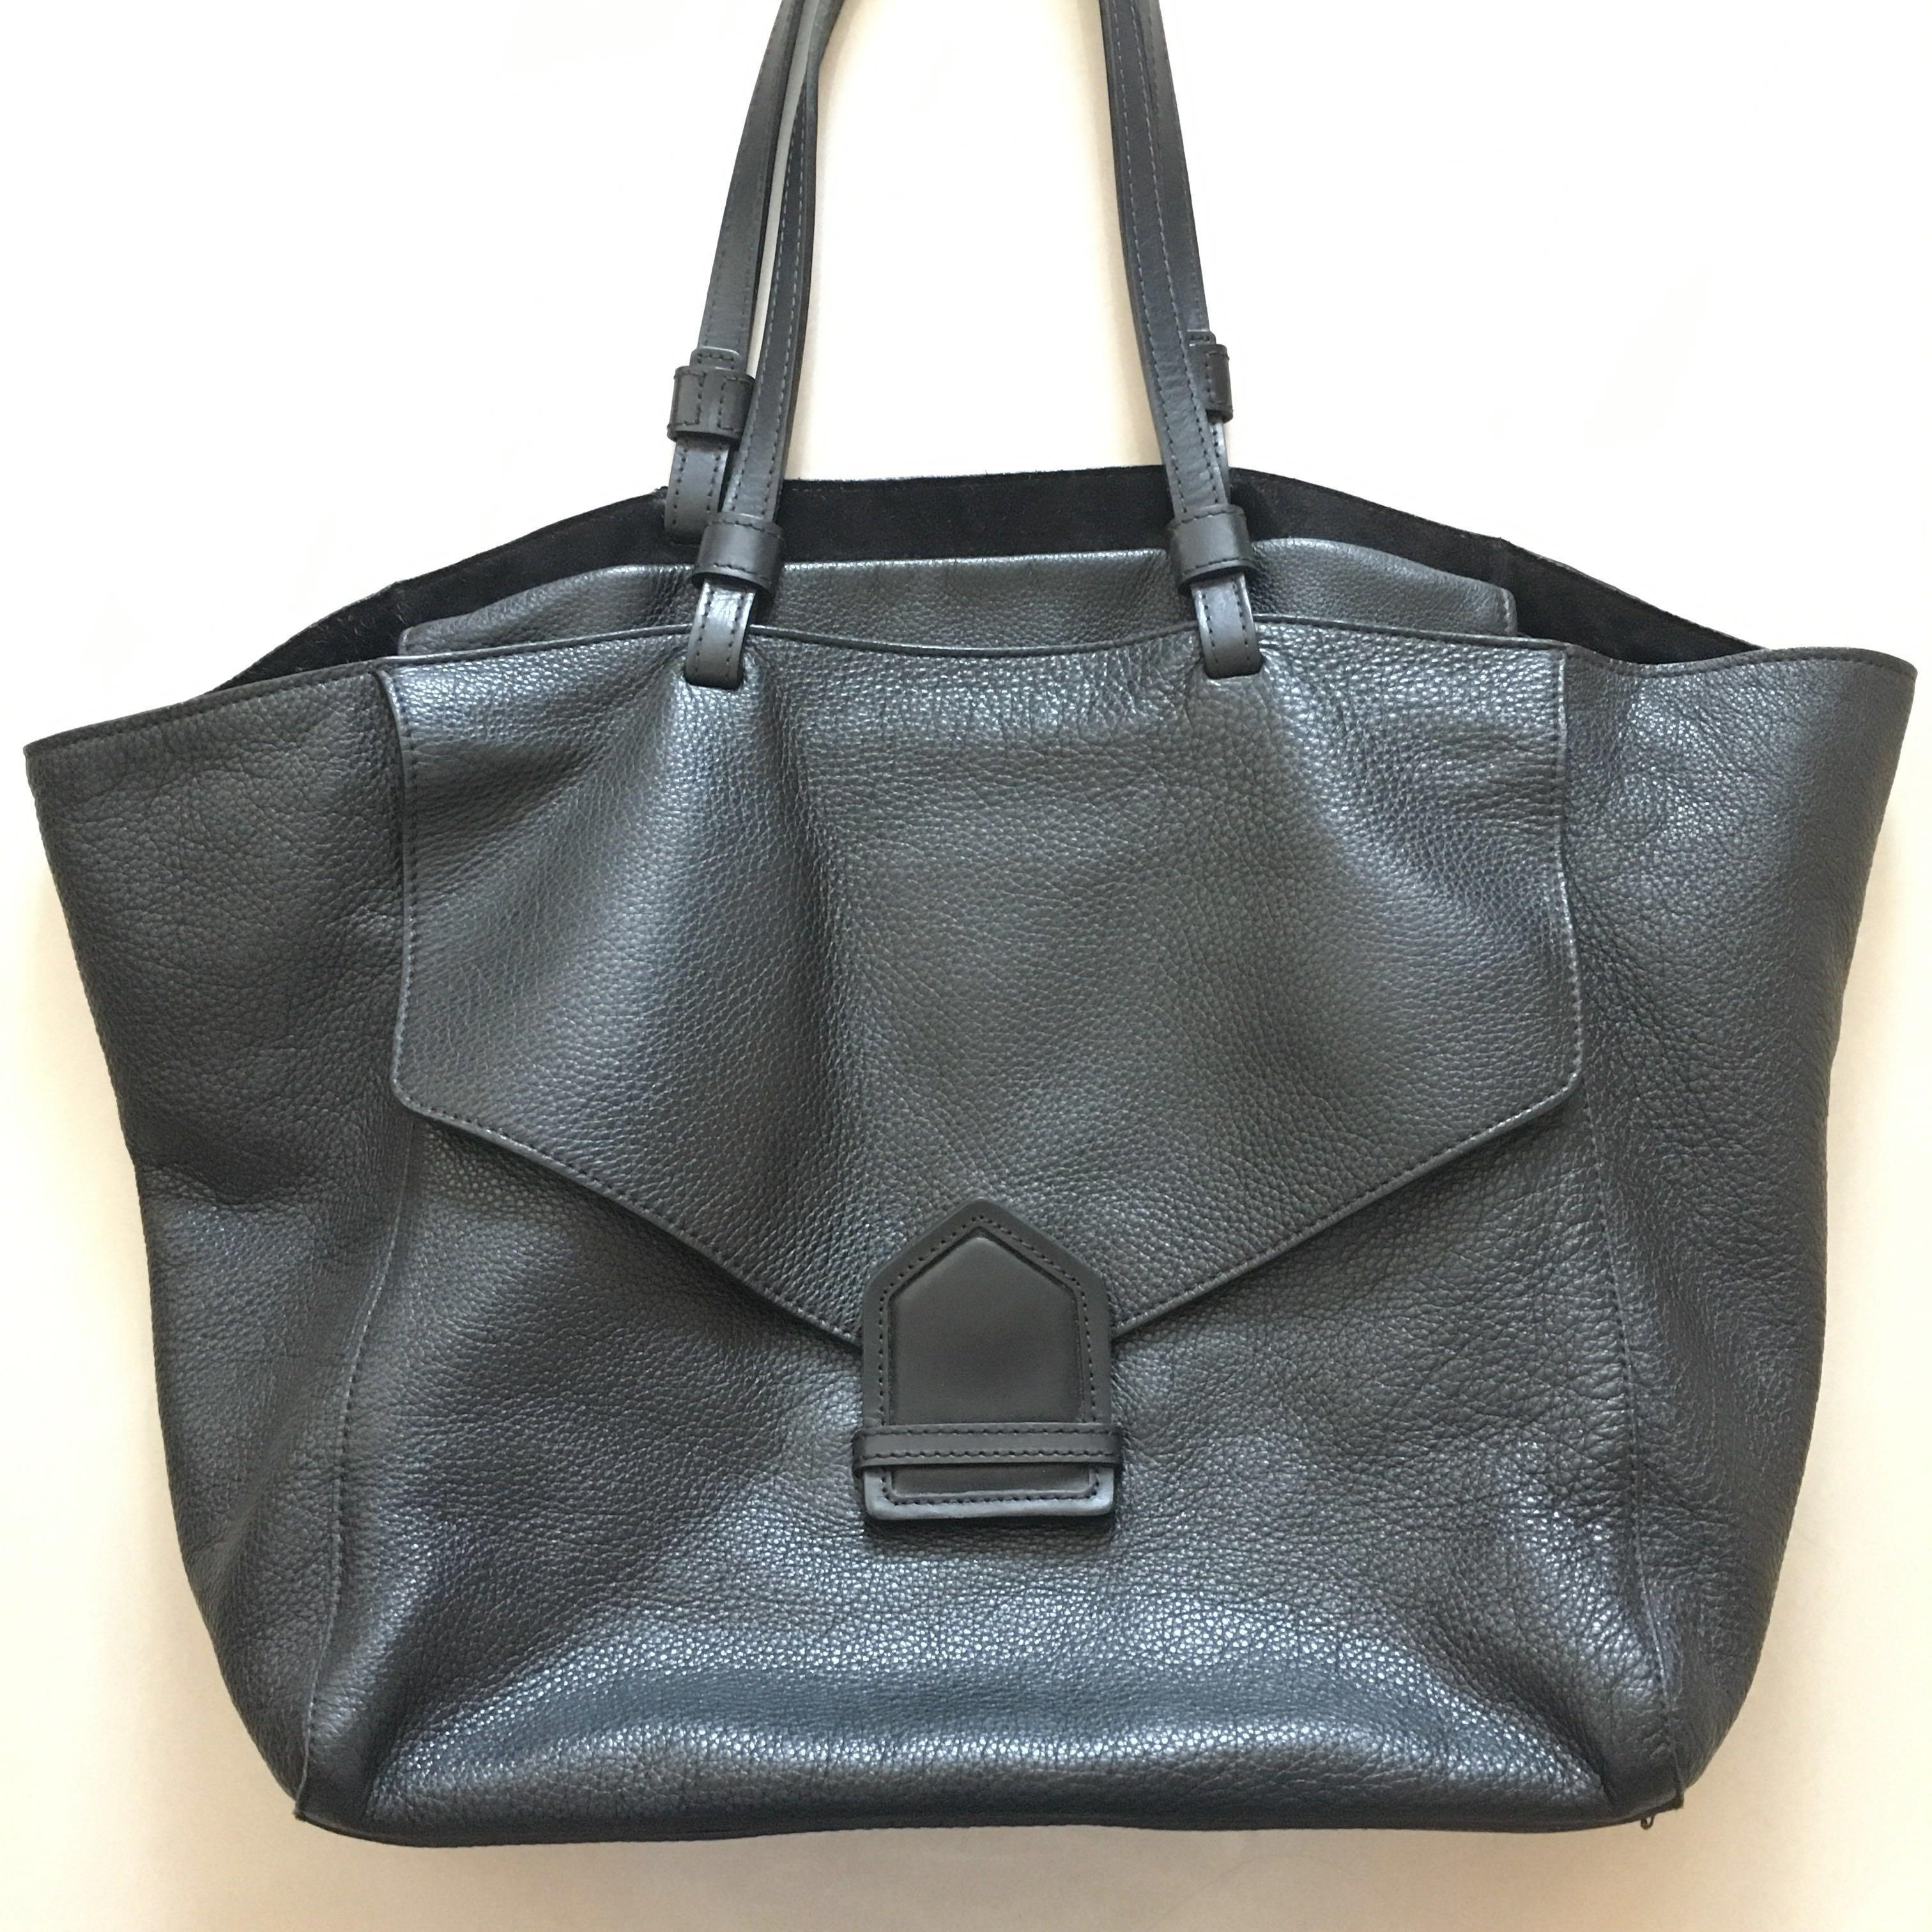 1ac2fb9ff4a Massimo Dutti leather tote bag, Luxury, Bags & Wallets, Handbags on ...